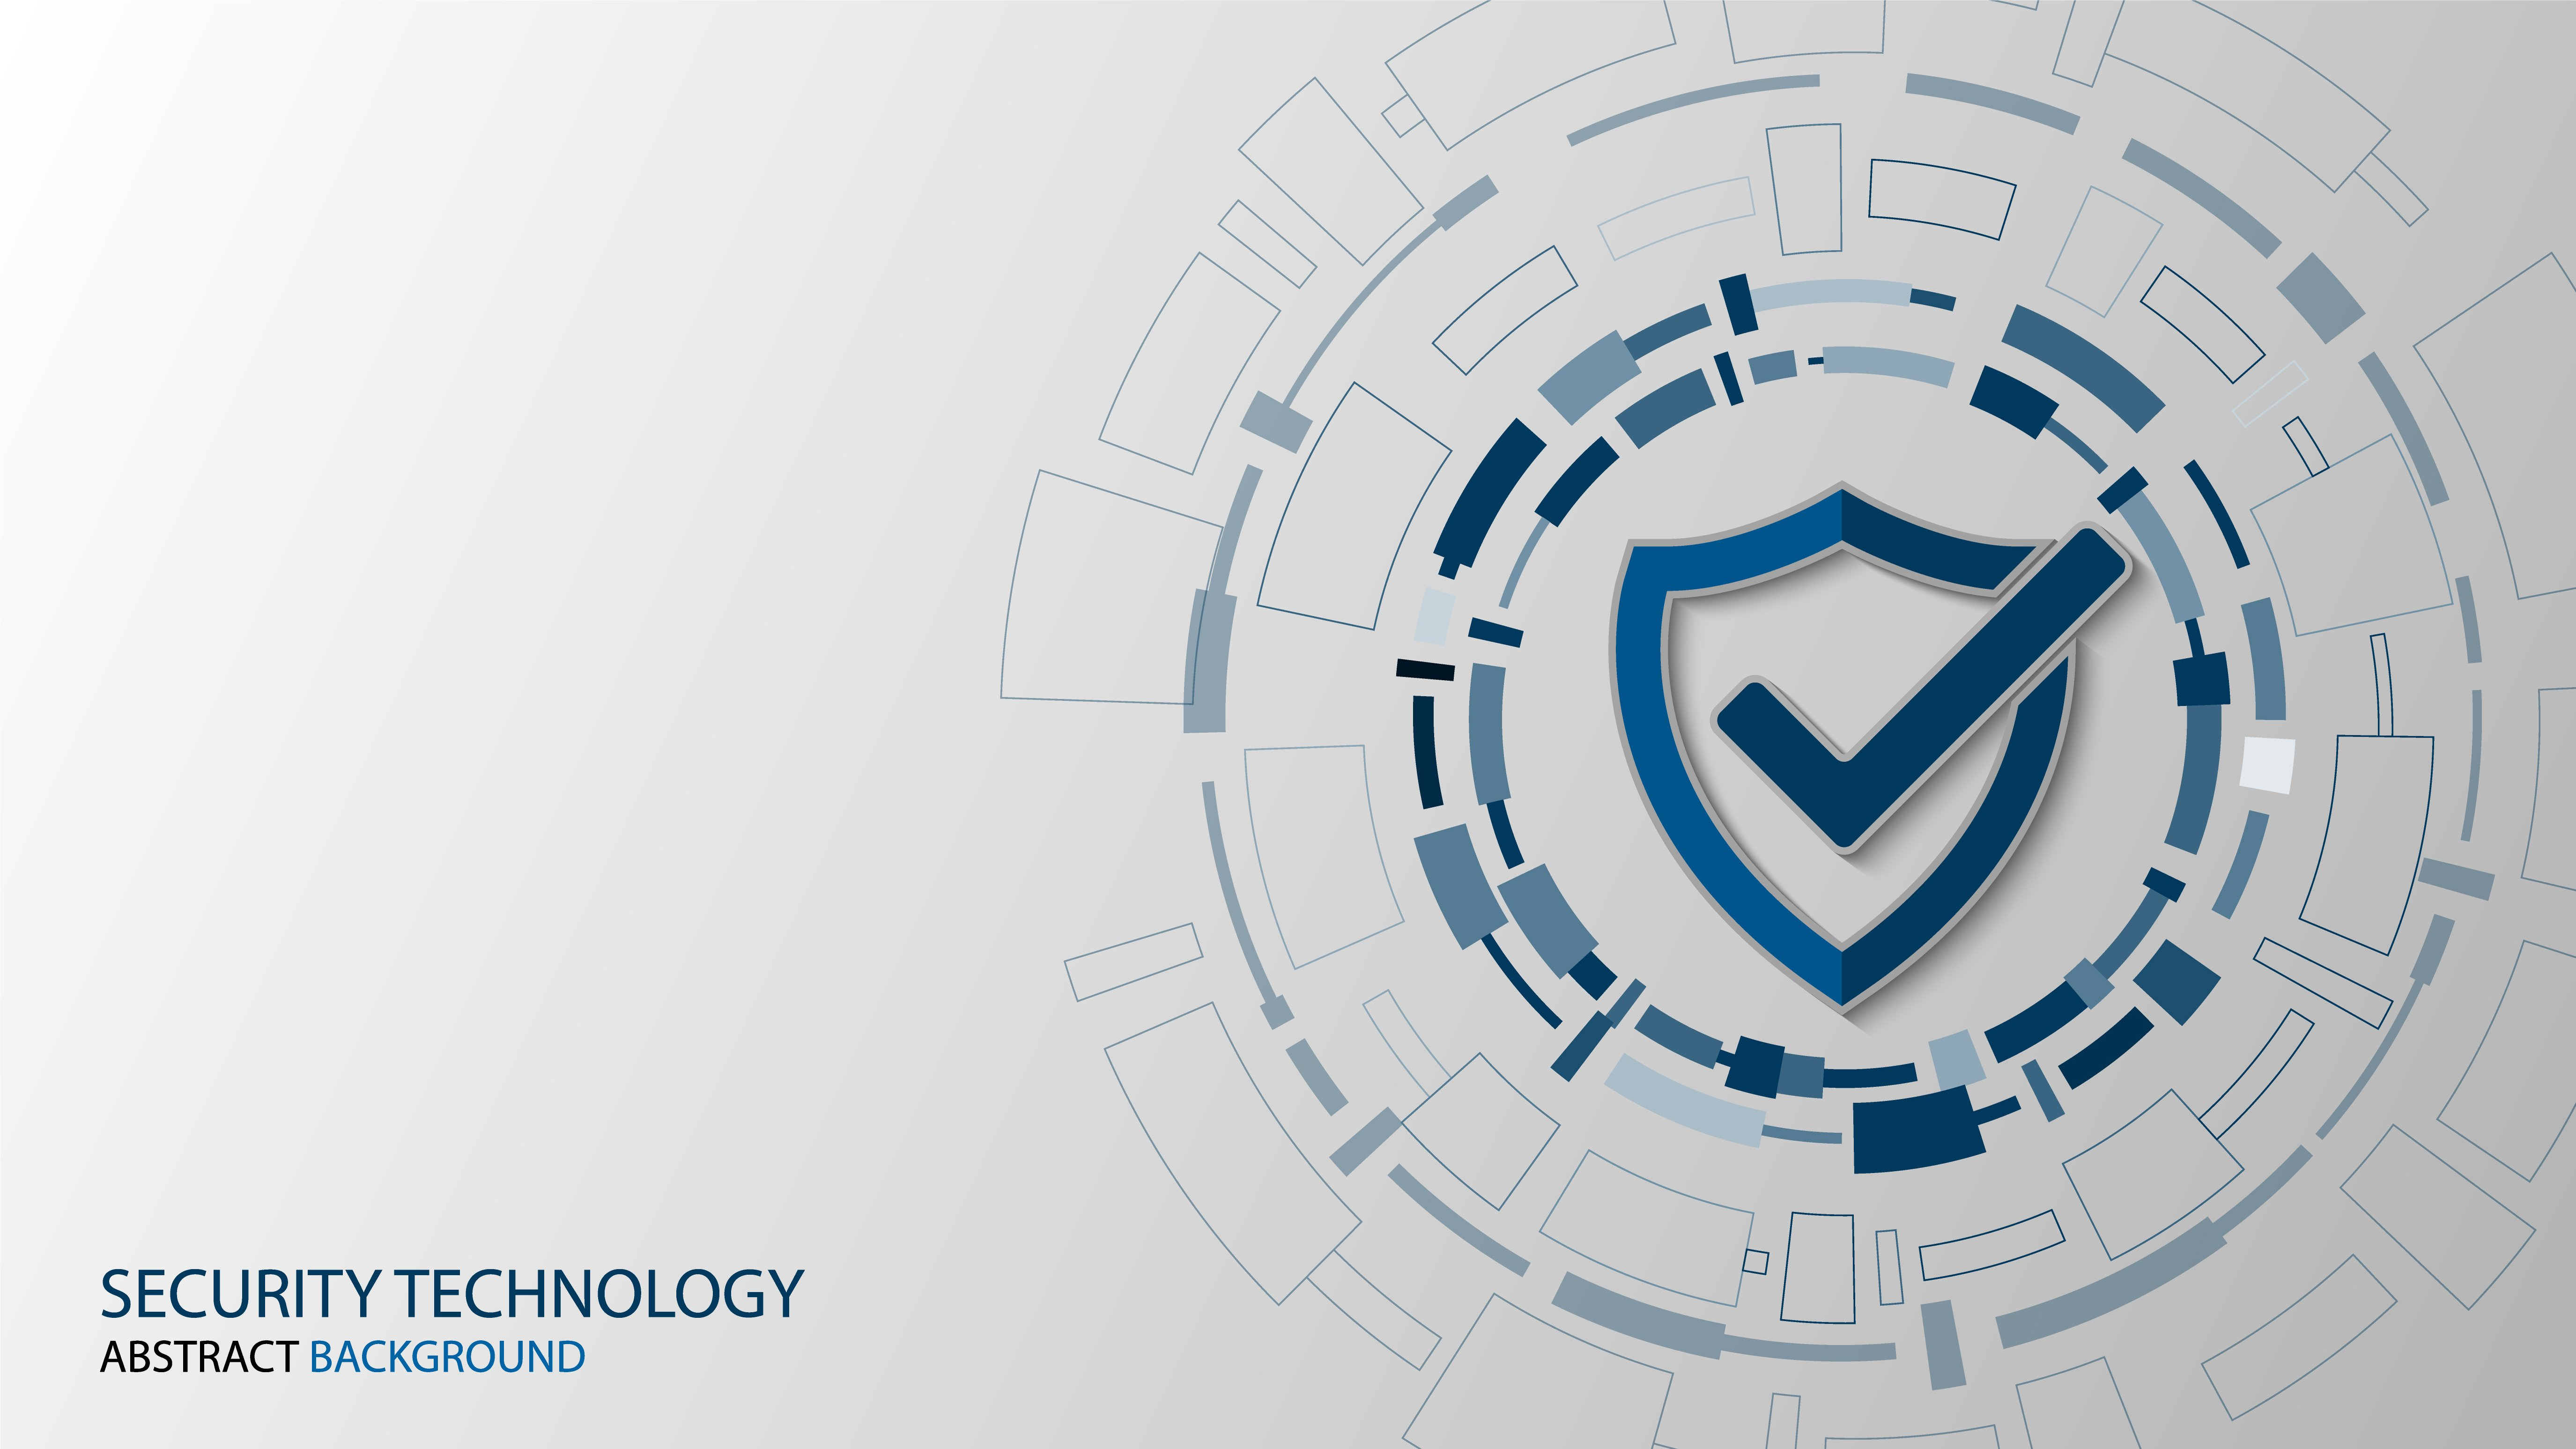 Cyber technology security network protection background 1330299 5500x3094